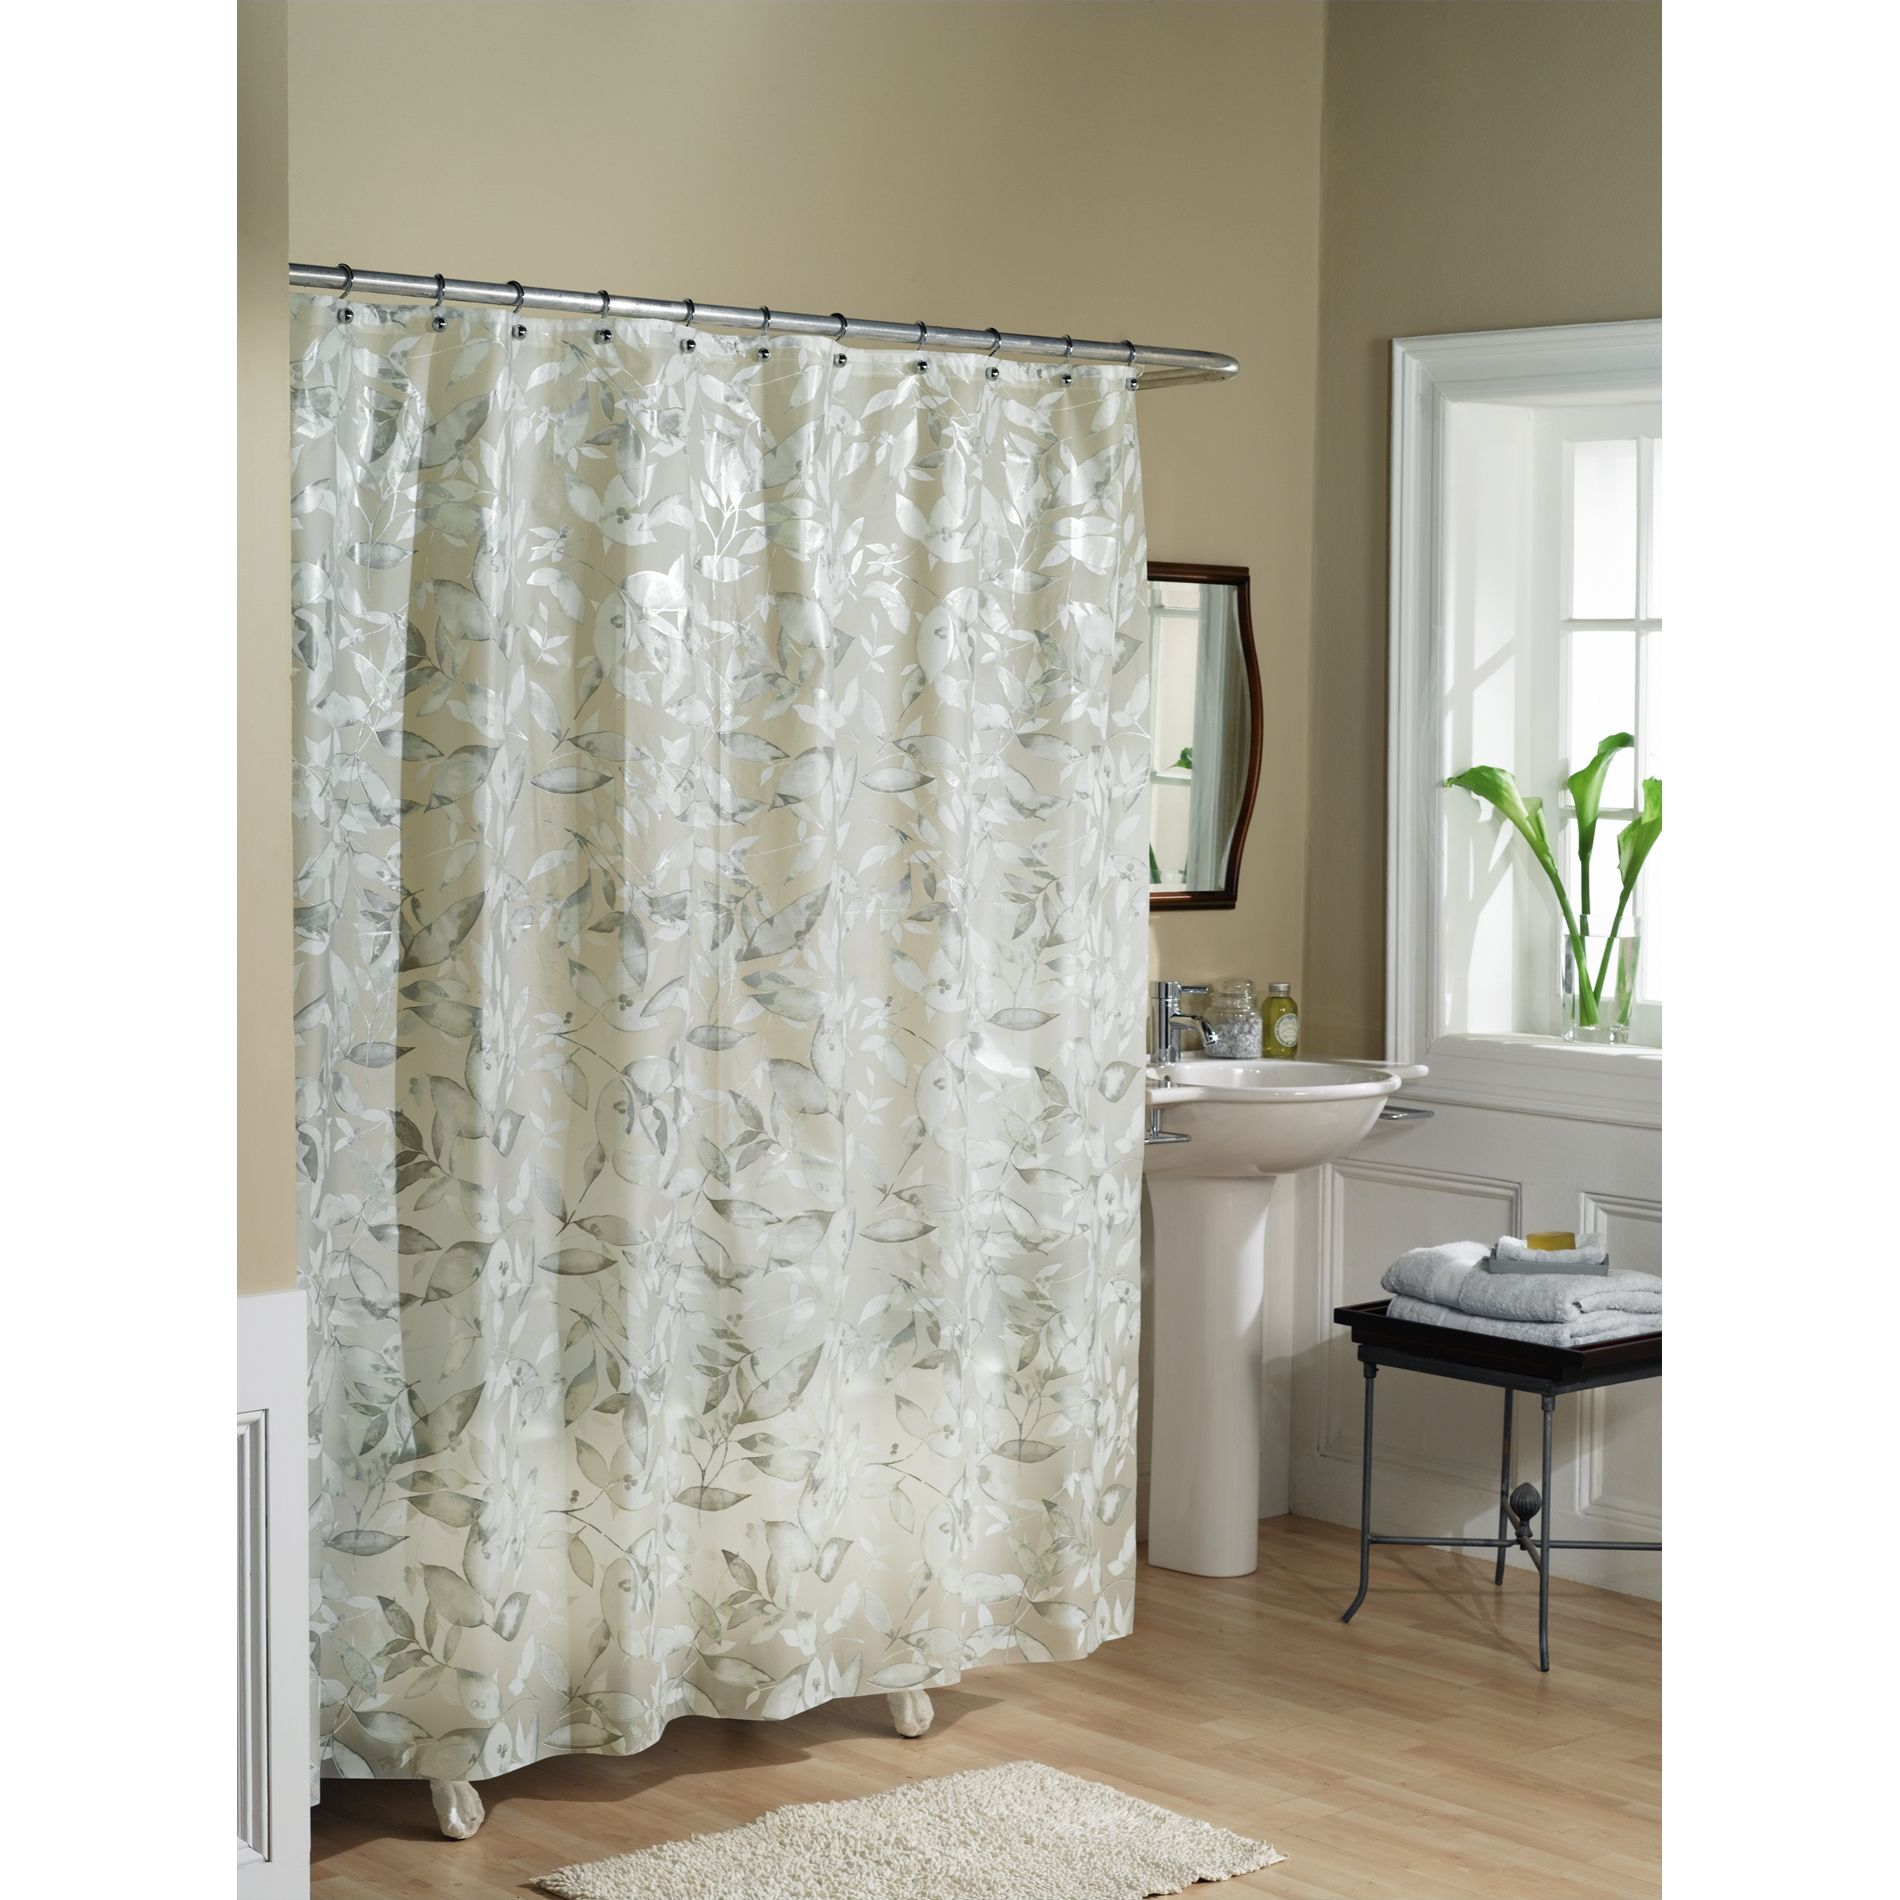 30 great pictures and ideas of decorative ceramic tiles Bathroom shower curtain ideas